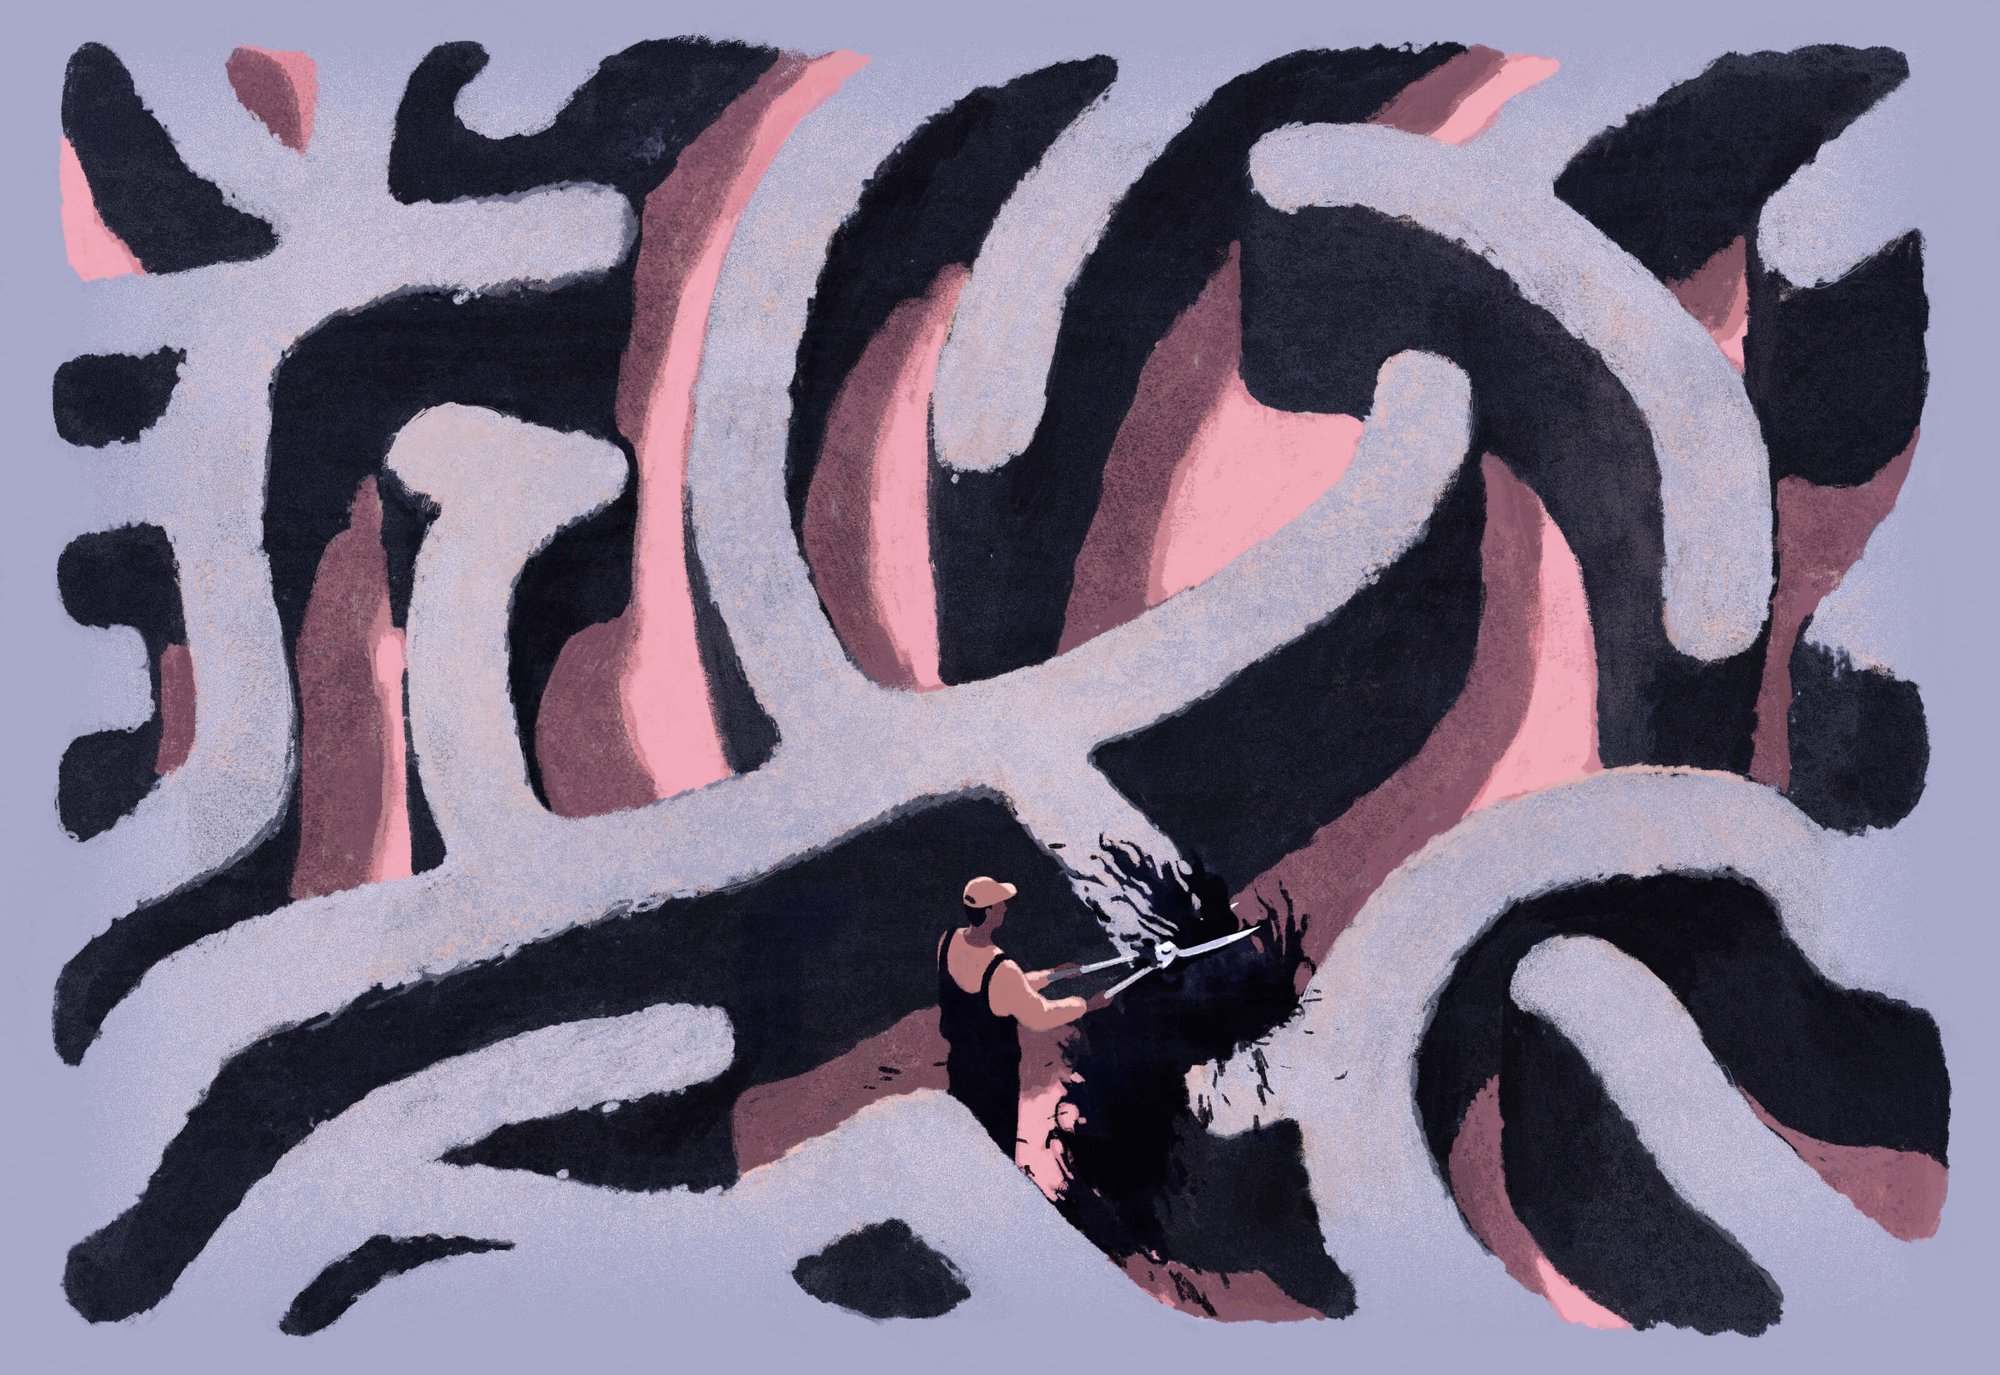 illustration of man trimming what looks like hedges or a brain